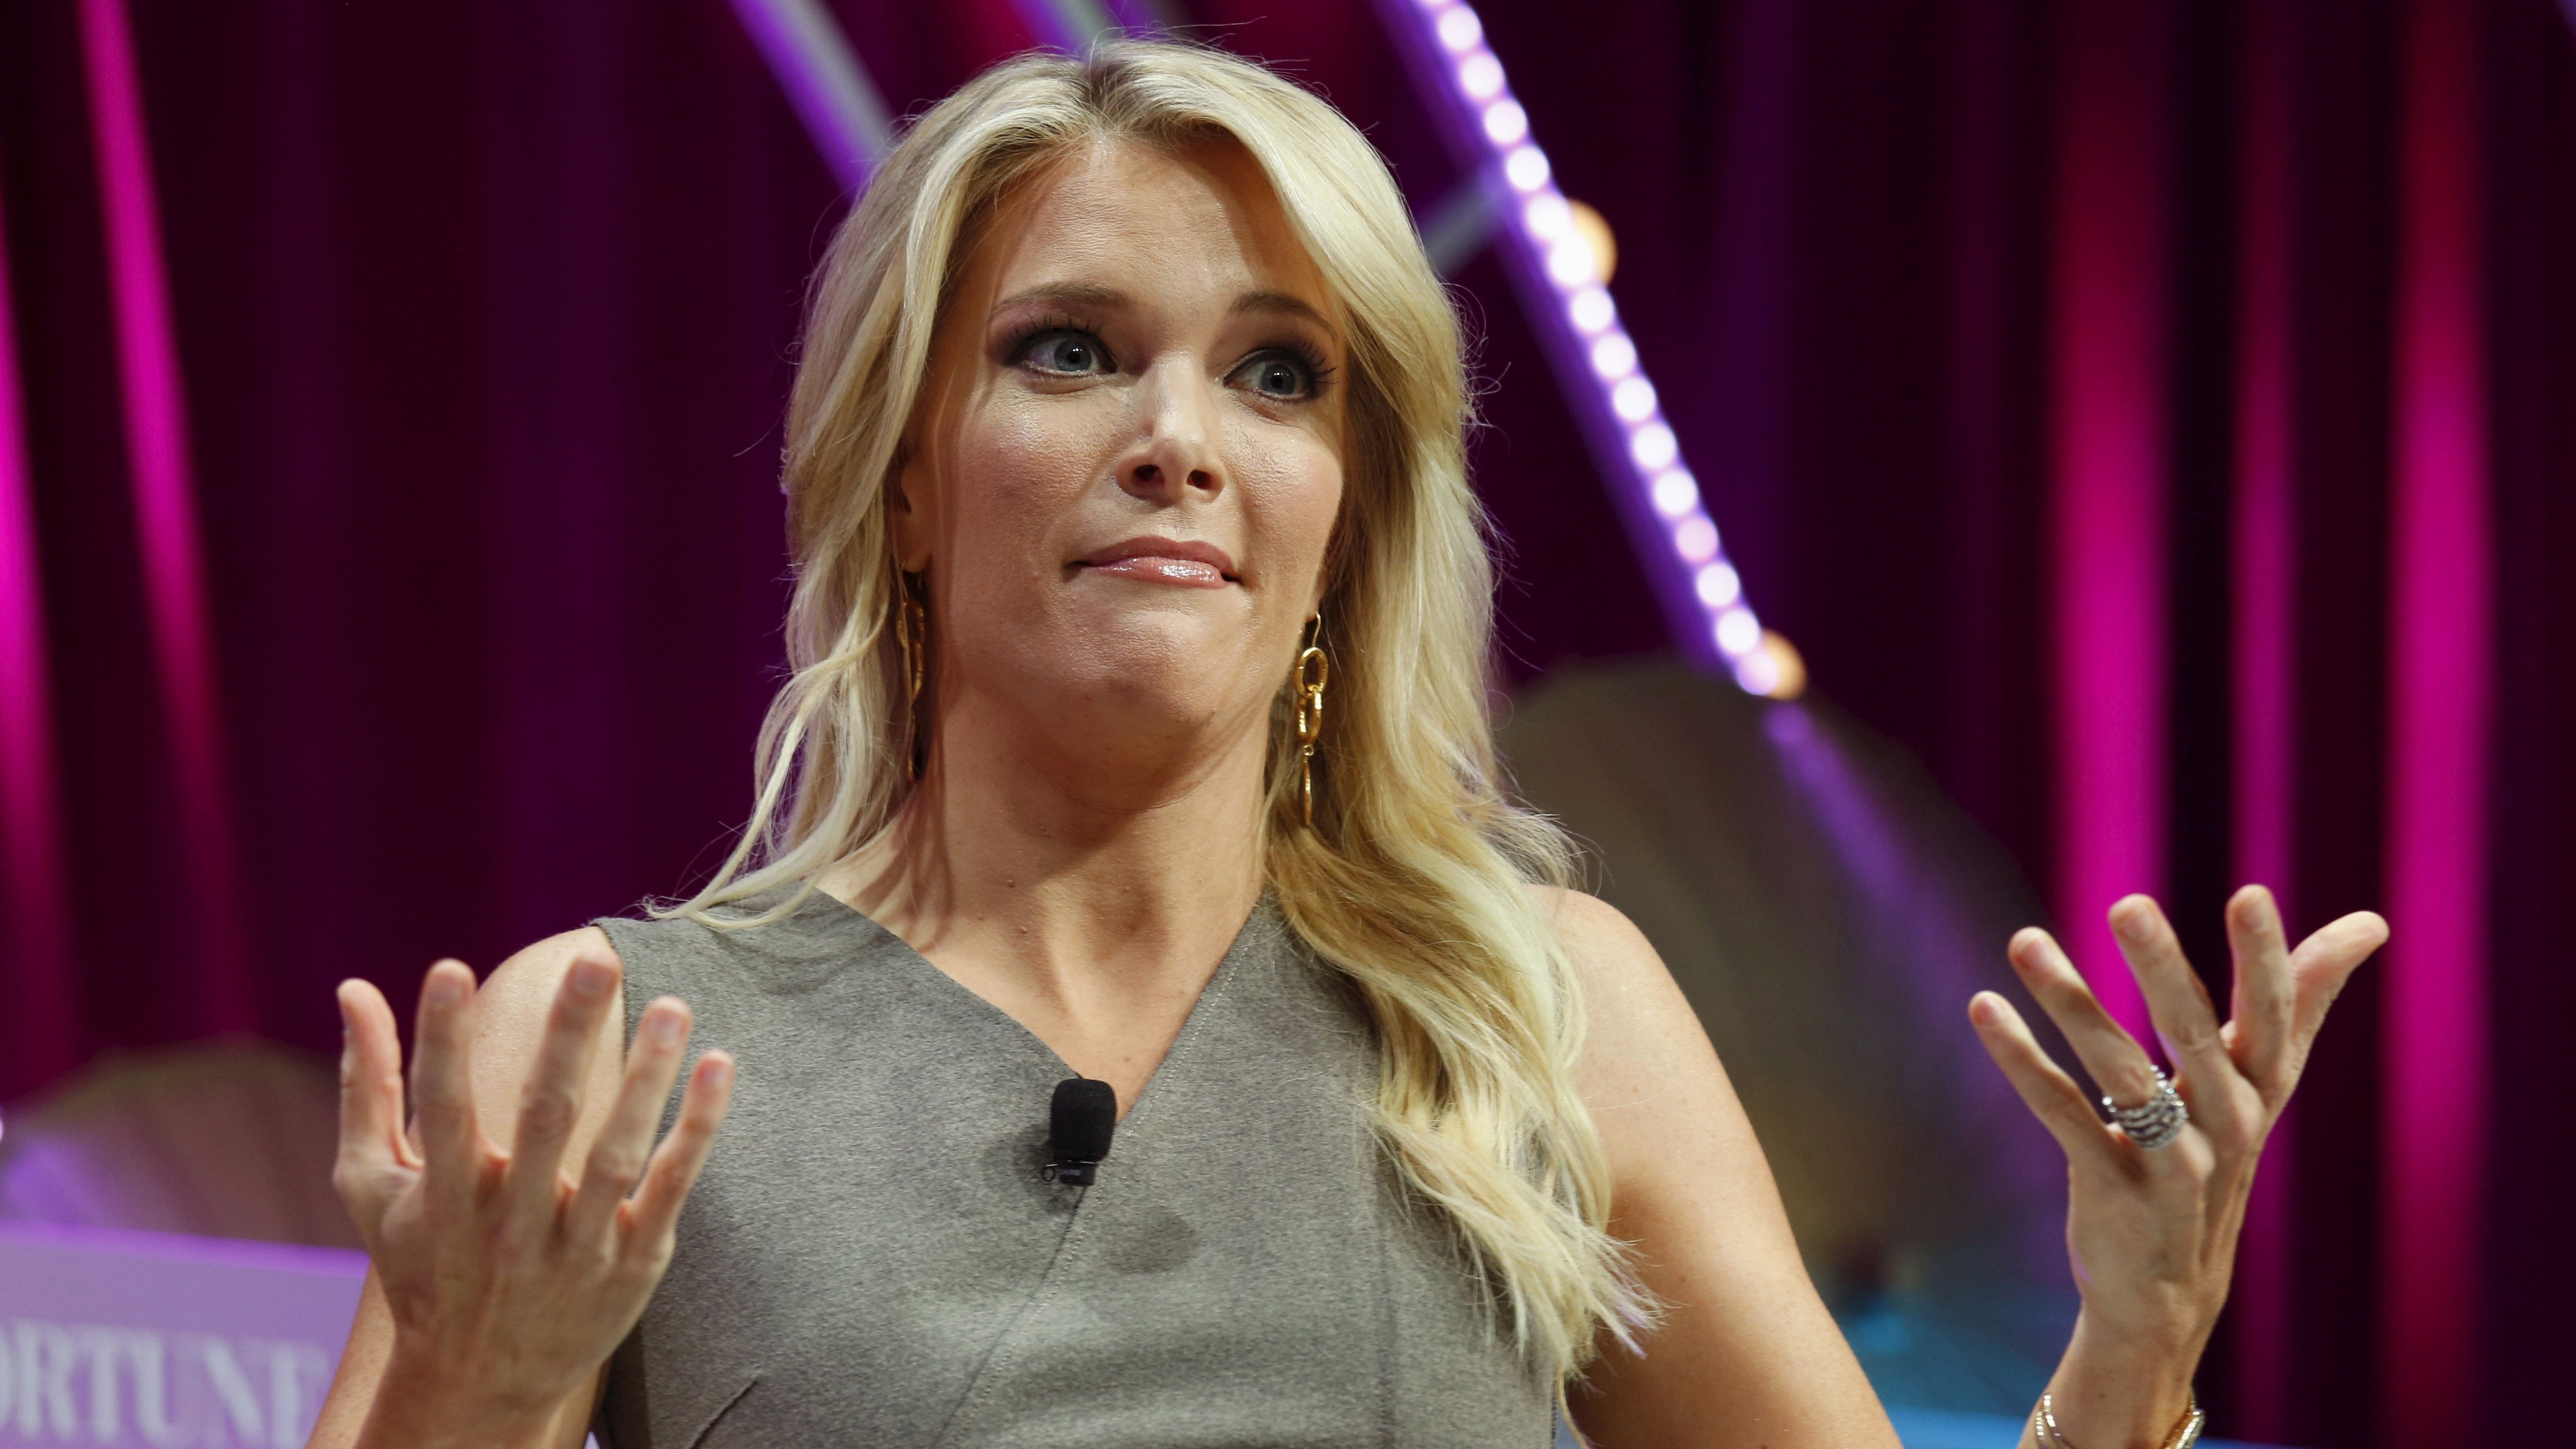 Megyn Kelly's NBC show was cancelled for blackface comments